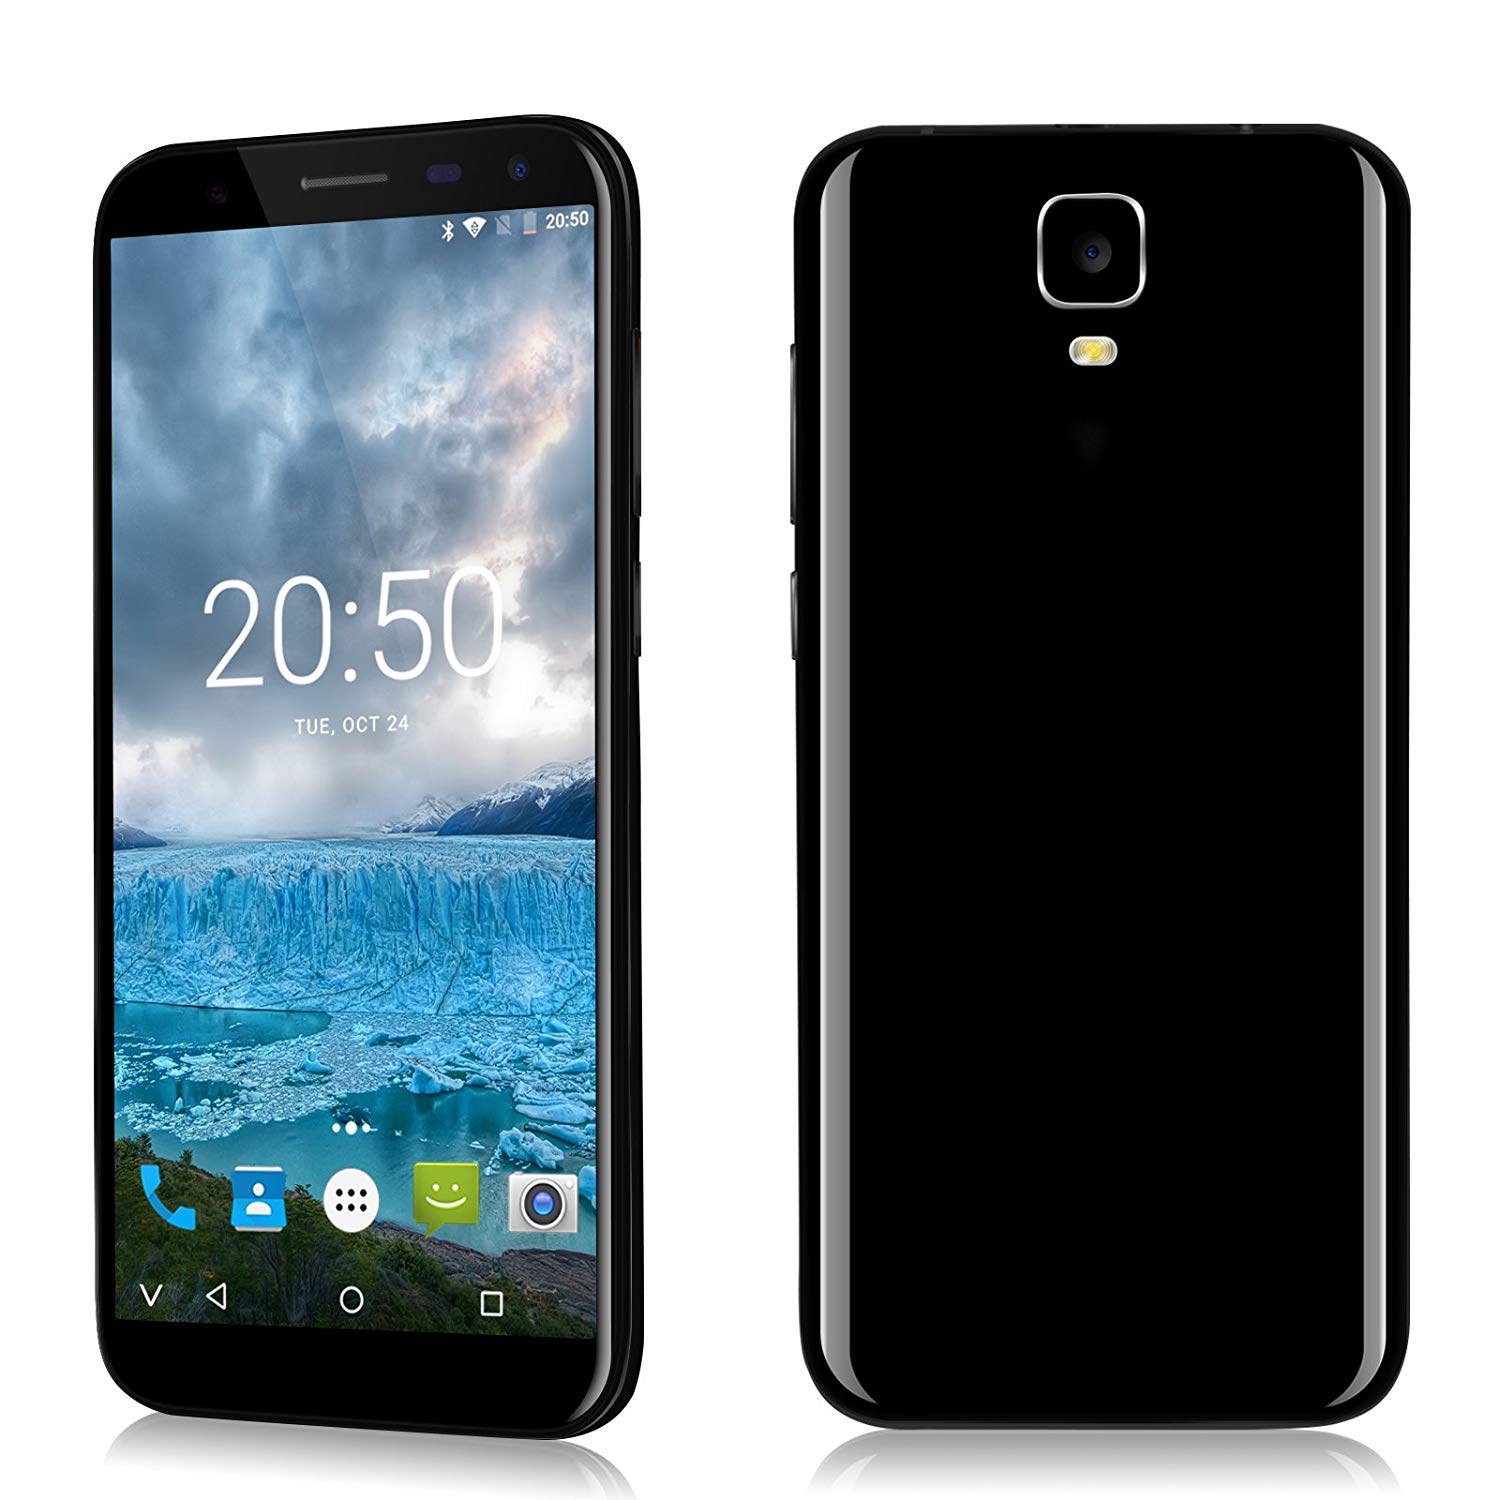 Xgody D24 16GB+1GB 5.5 Inch Android 7.0 Nougat Unlocked Cell Phones for GSM WCDMA 640/1280 Celulares desbloqueados For T-mobile AT&T(Black)